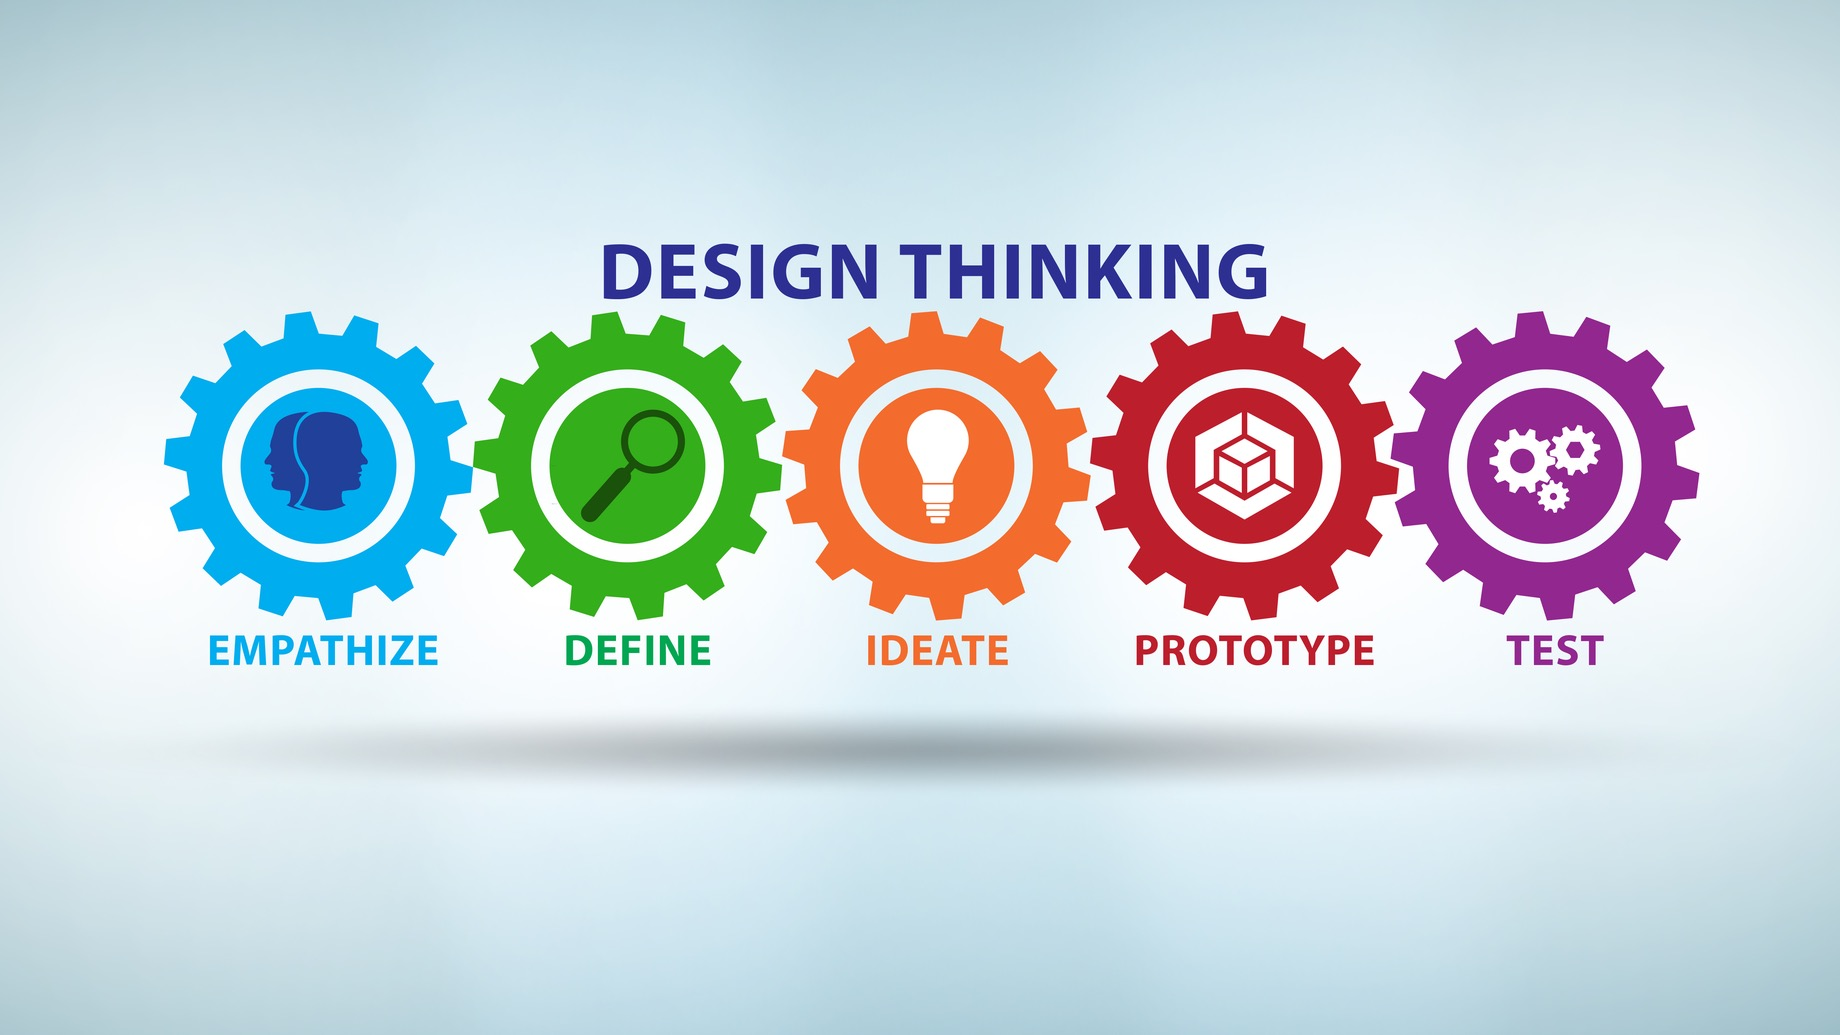 How Does Design Thinking Help In Innovation?